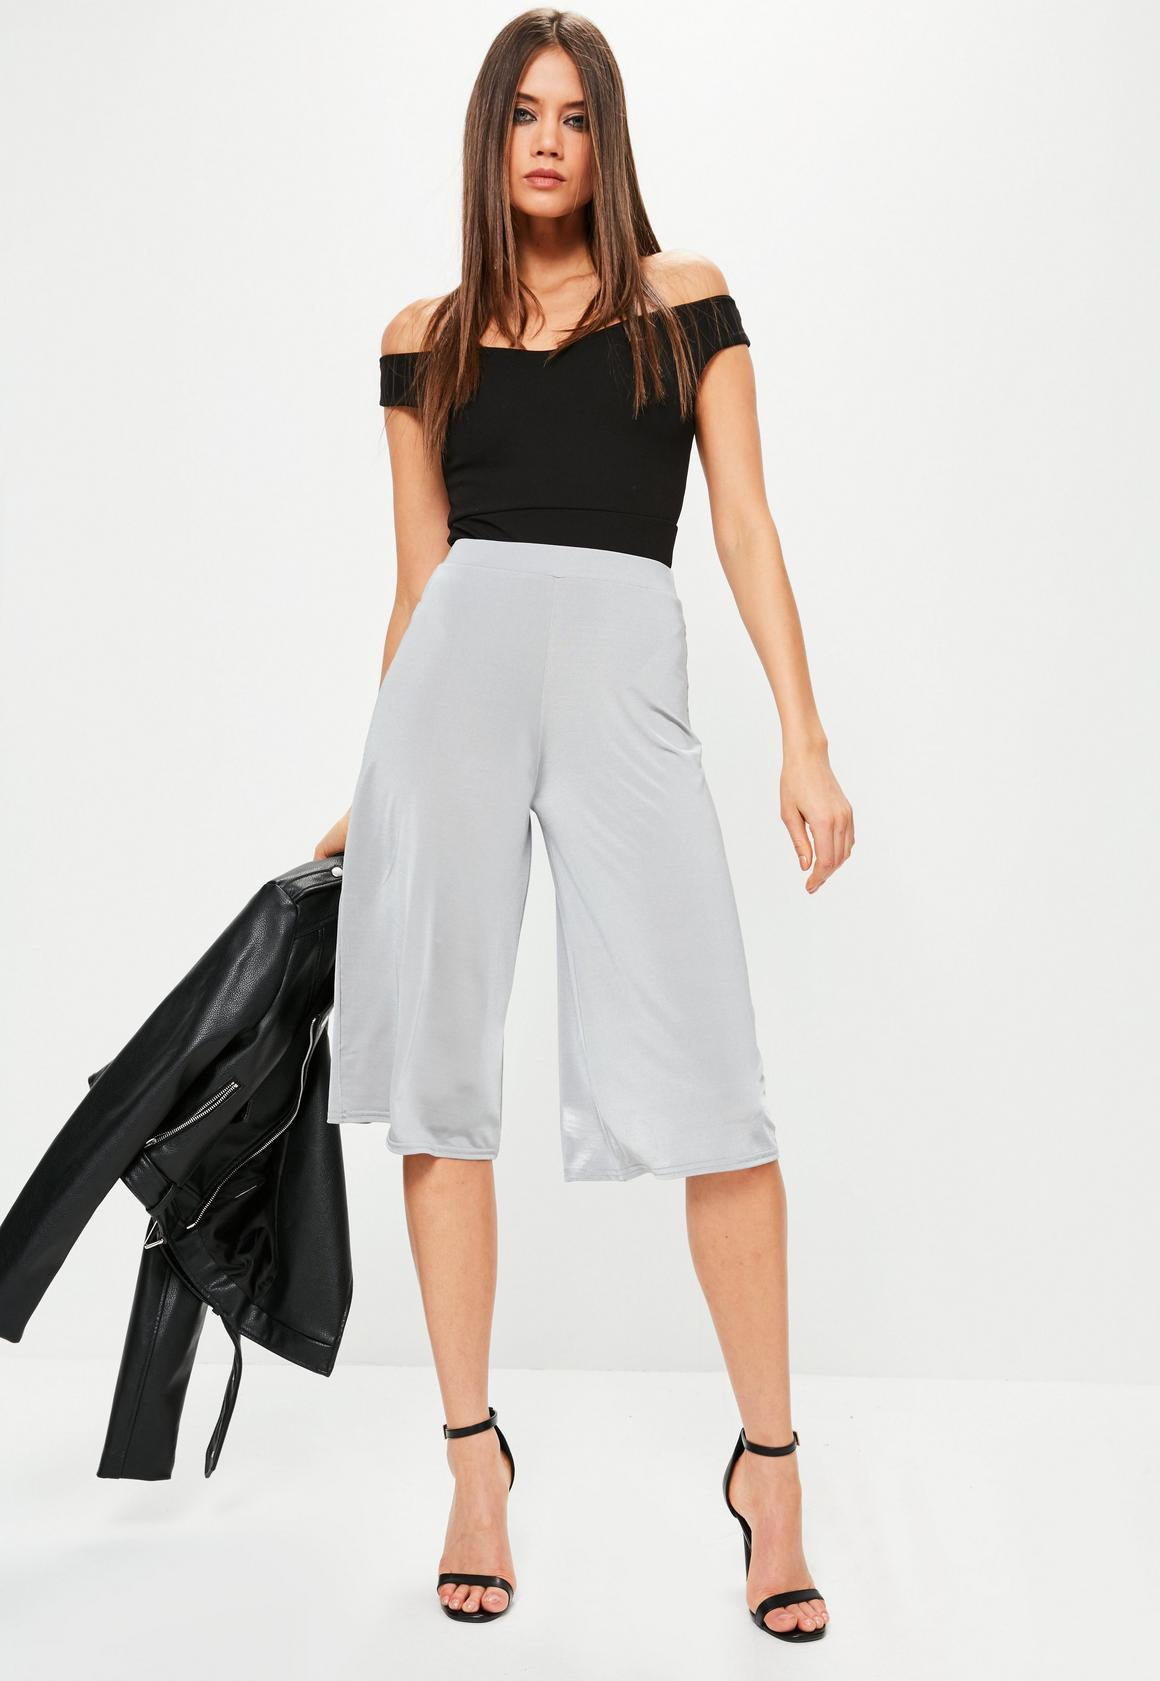 Image result for Culottes for women